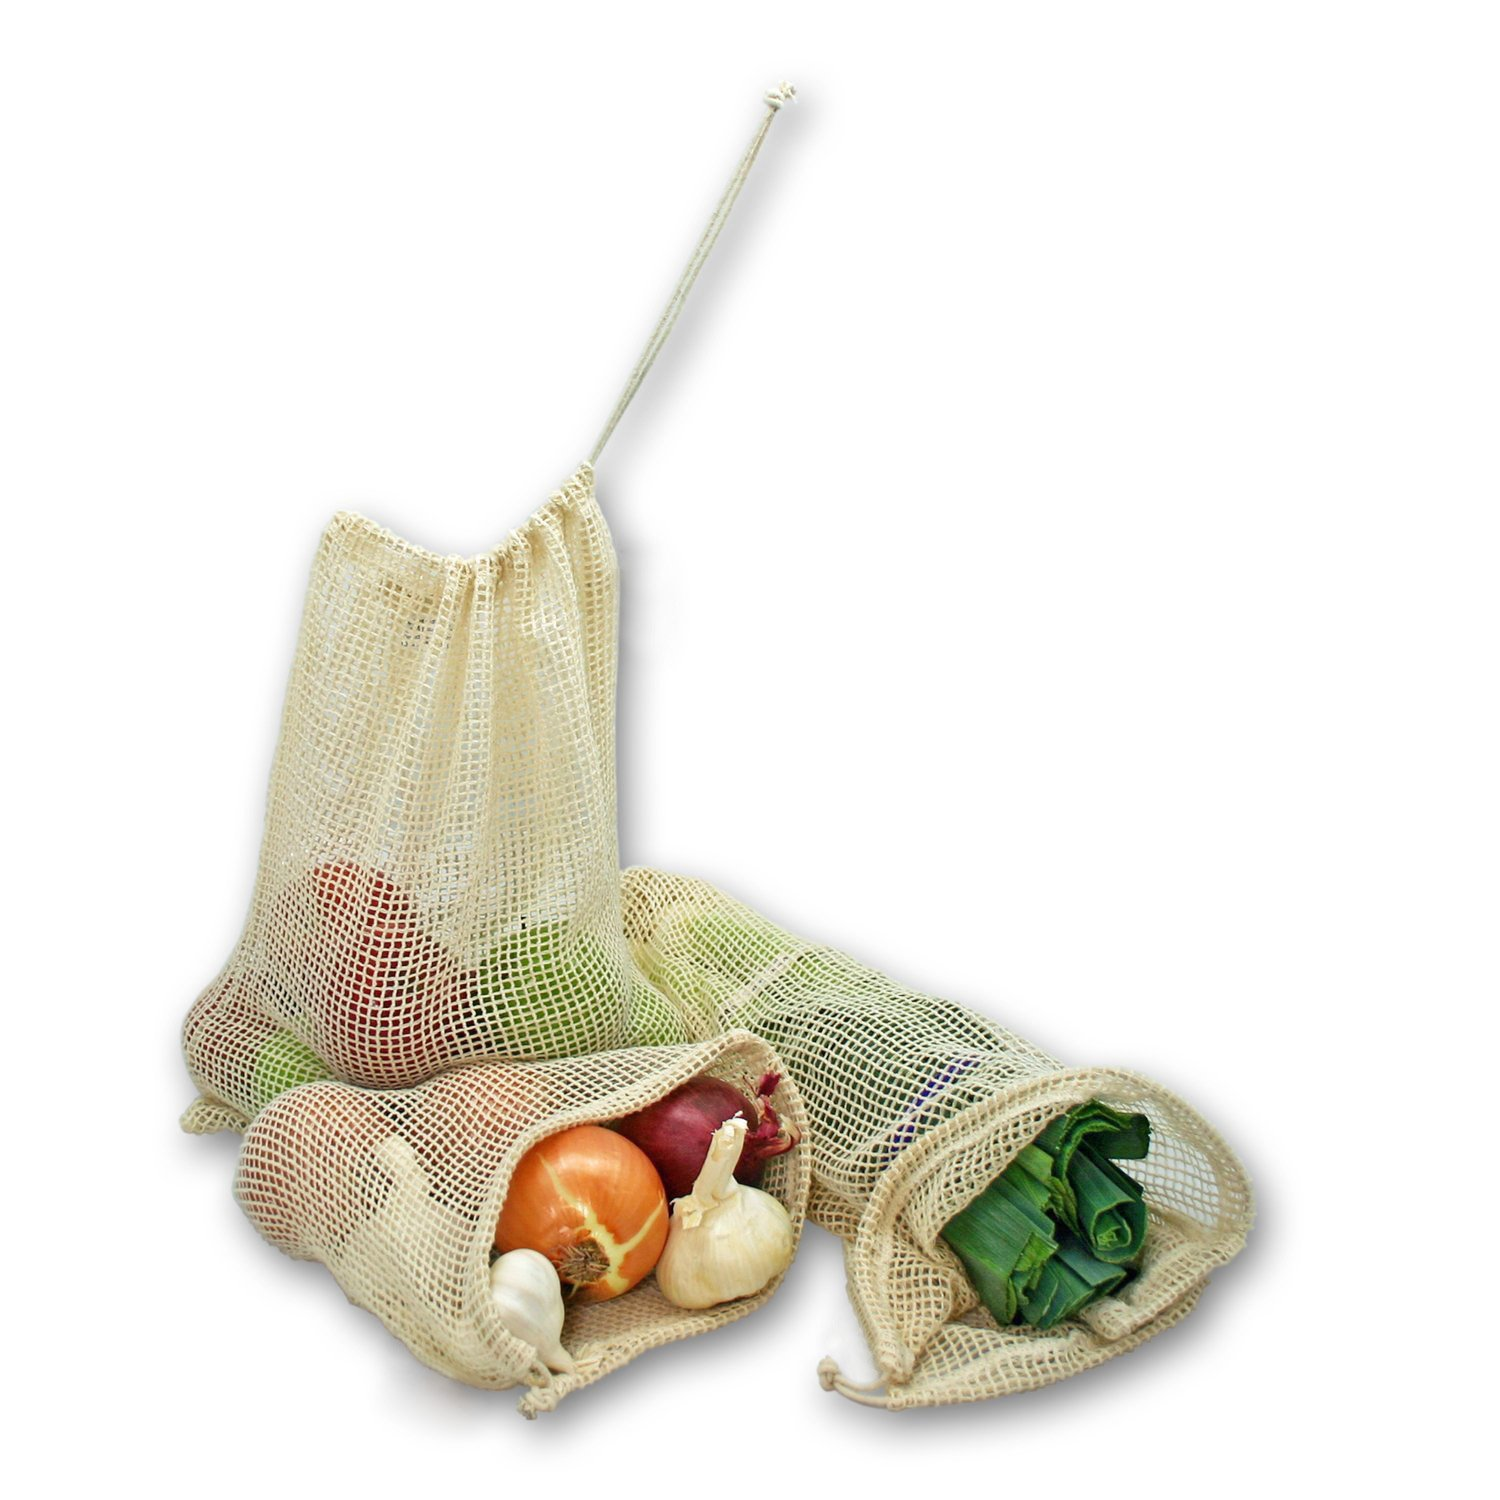 Reusable Produce Bags, DayBuy Organic Cotton Grocery Bag[Natural Cotton Mesh is Biodegradable][Zero-Waste] for Grocery Shopping and Storage, Recyclable, Washable - Set of 9 (3 ea. S, M, L)